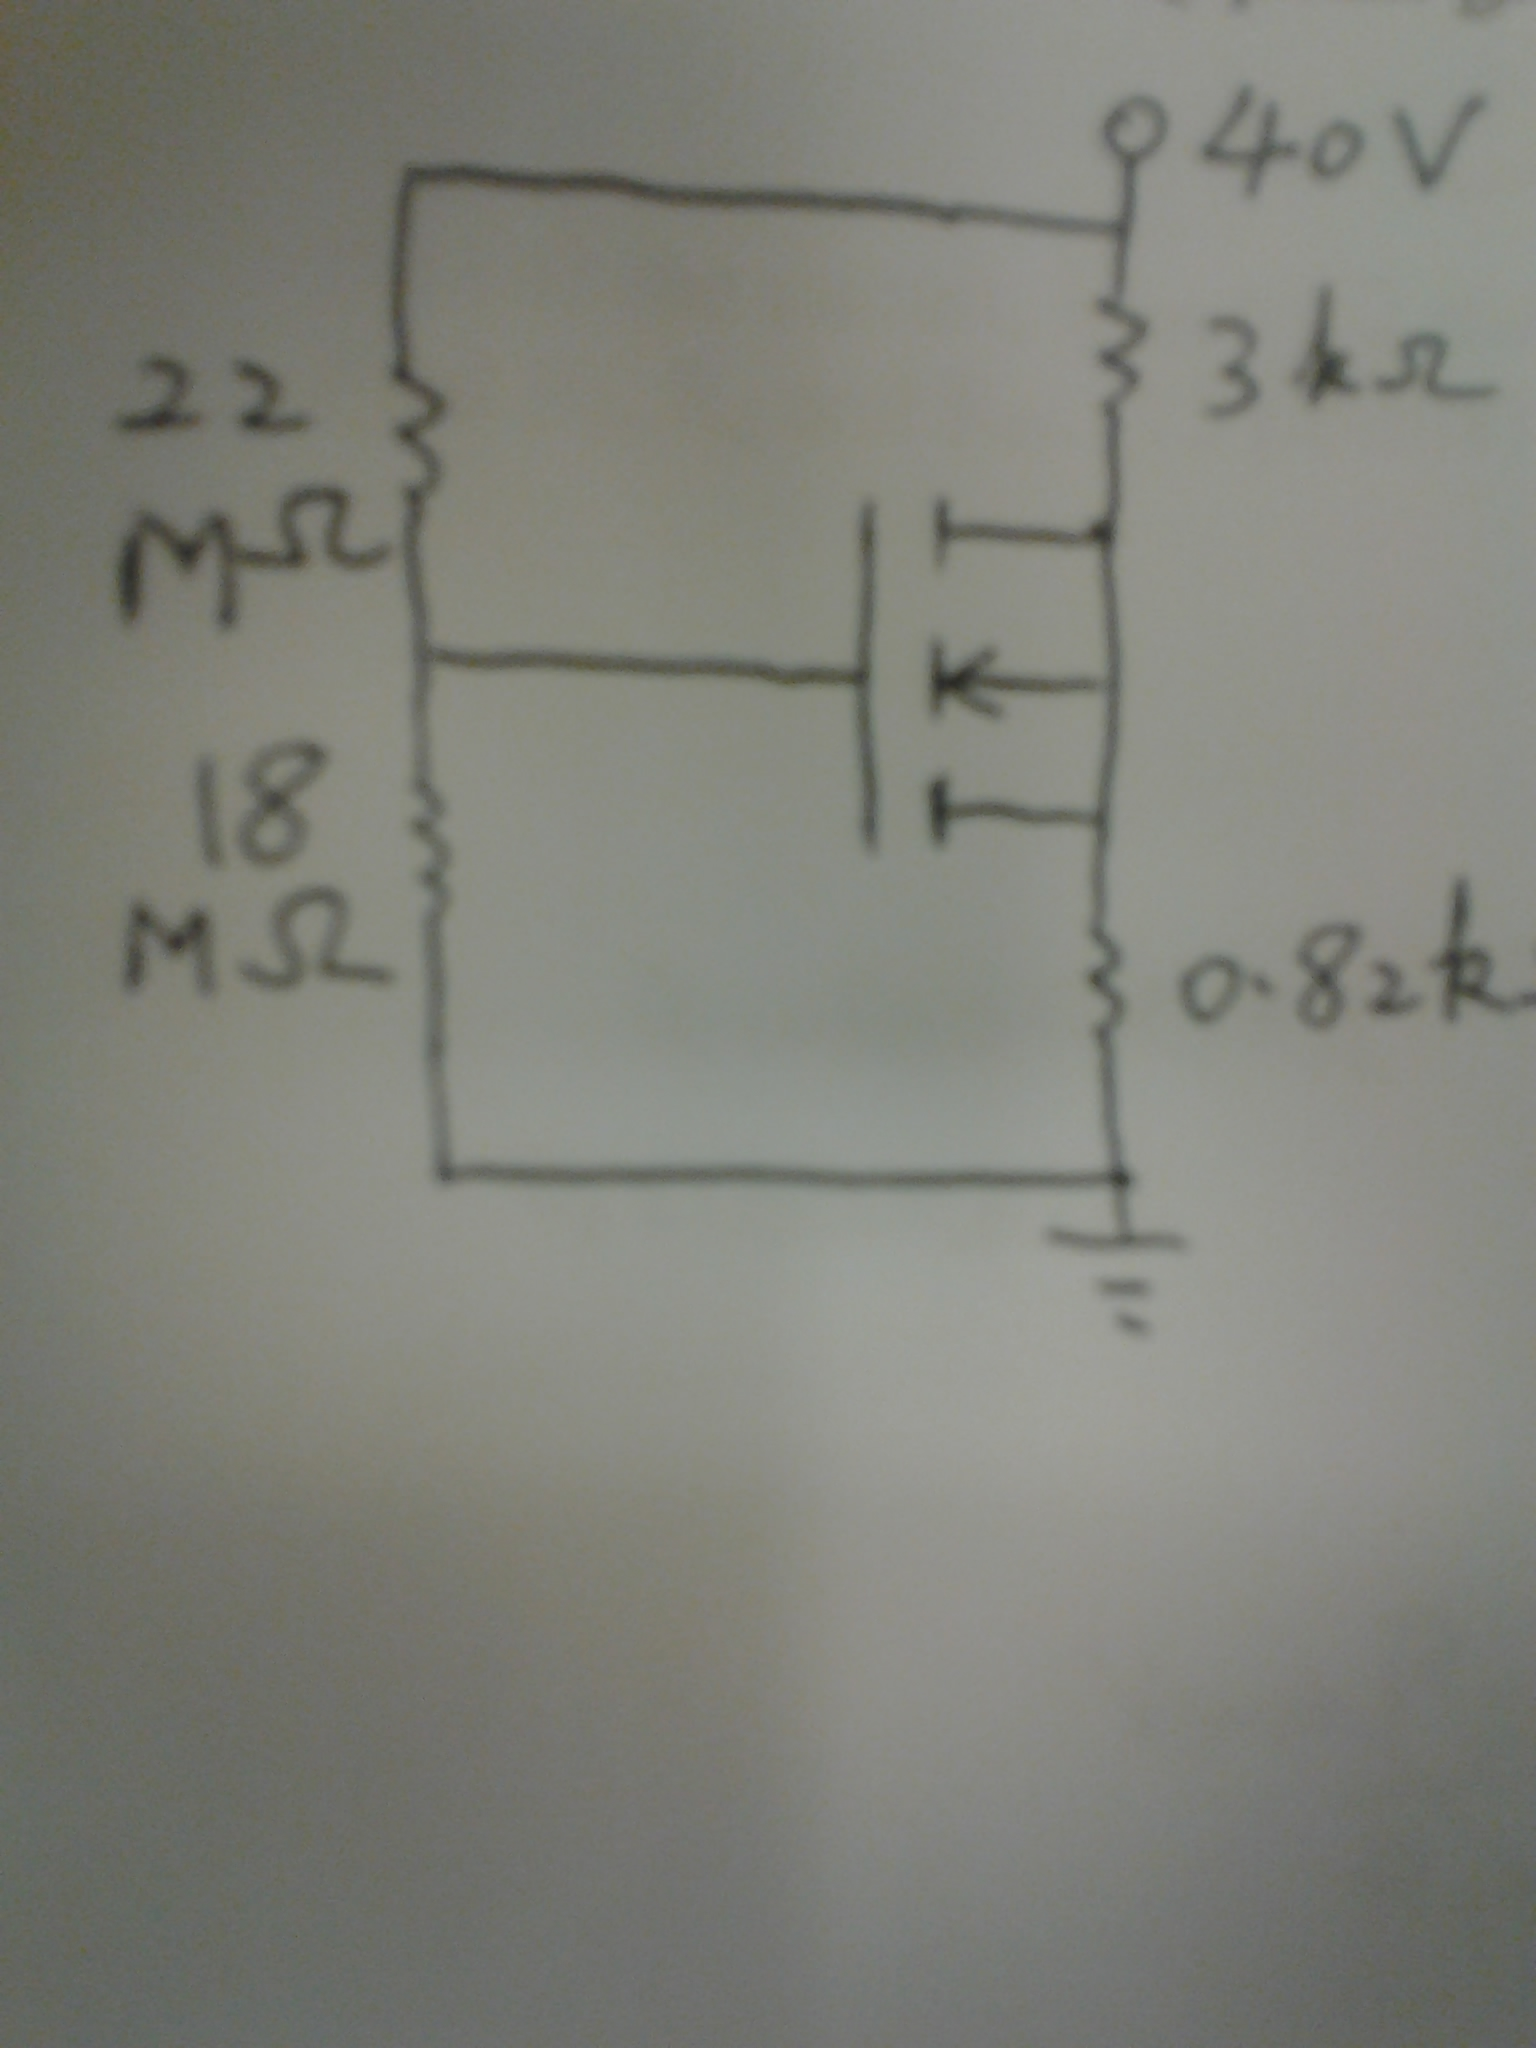 For the circuit the NMOSFET has the Vt =5v and Bet